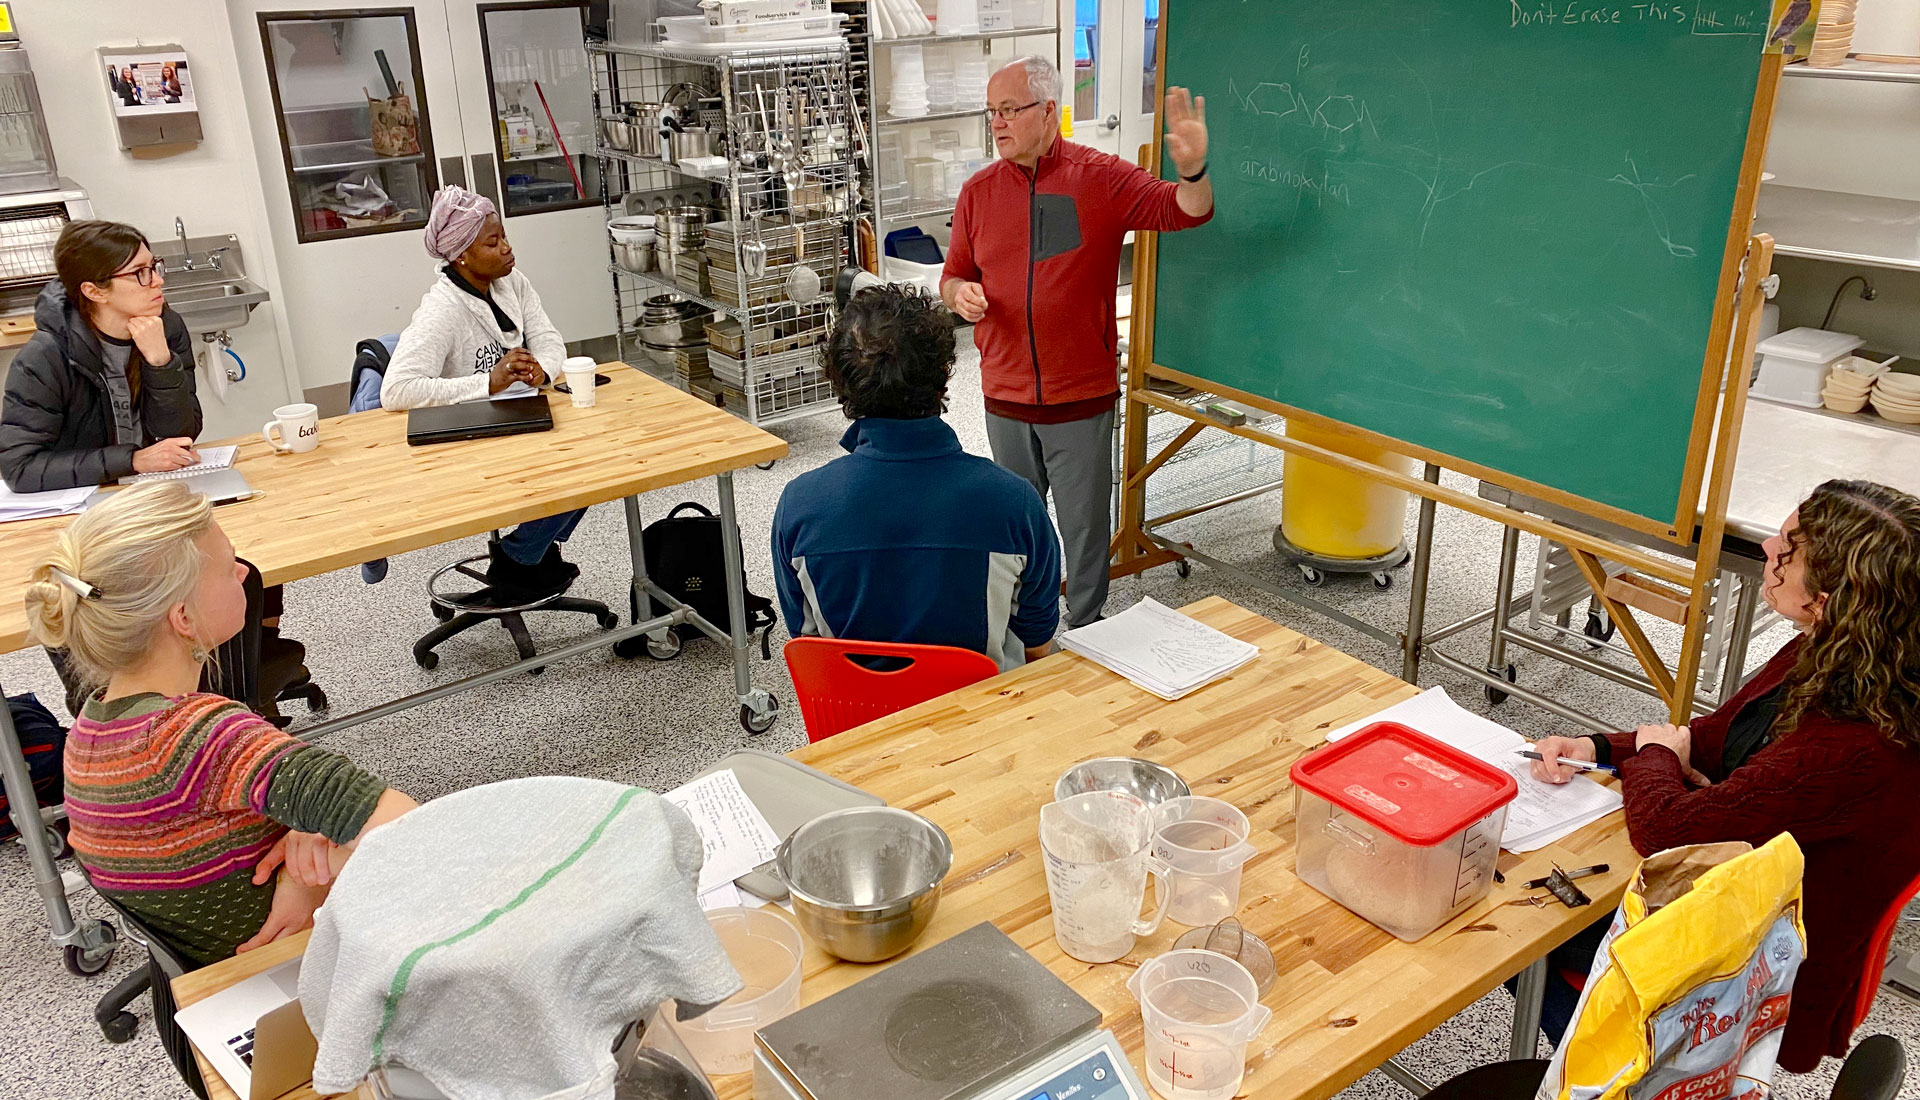 Older man lectures at blackboard to a small group in commercial kitchen